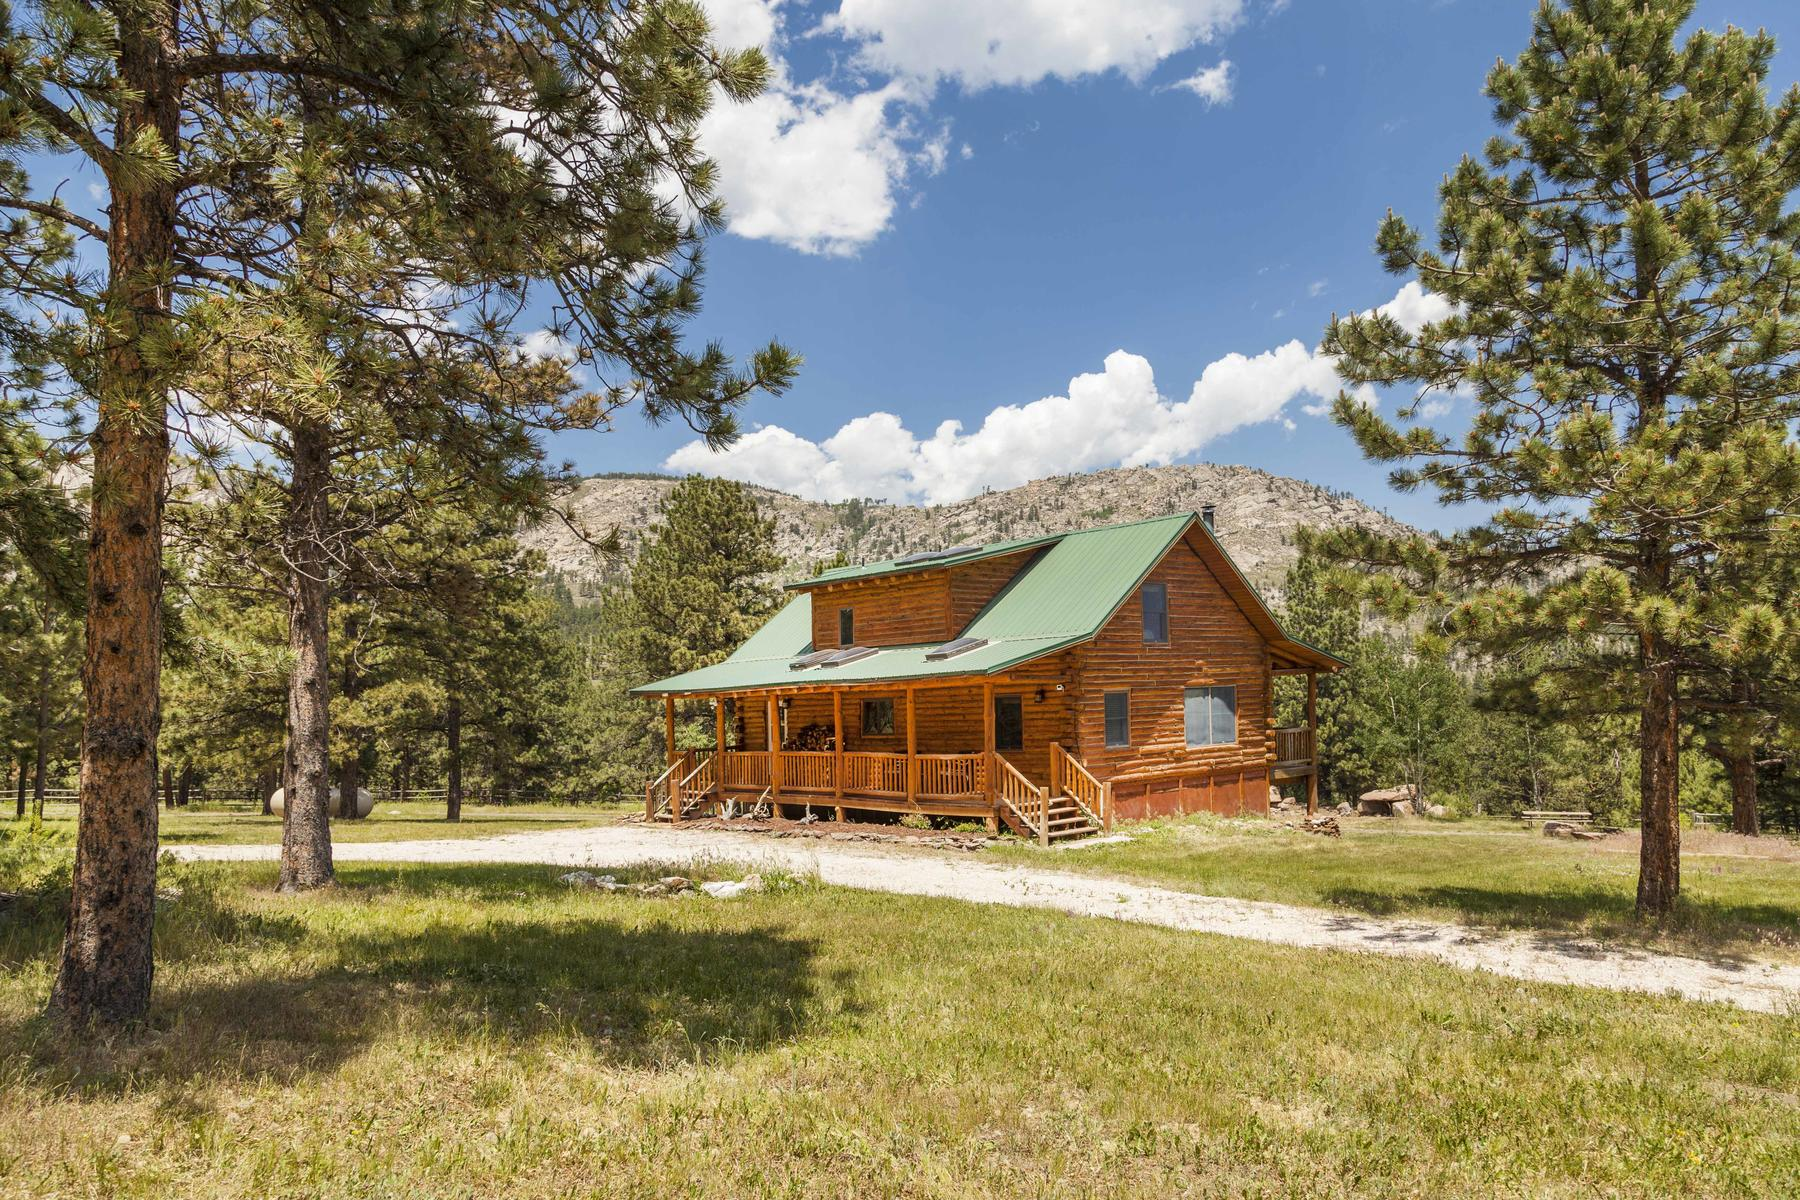 Single Family Home for Active at The J Ranch 1155 Spruce Mountain Dr Drake, Colorado 80515 United States